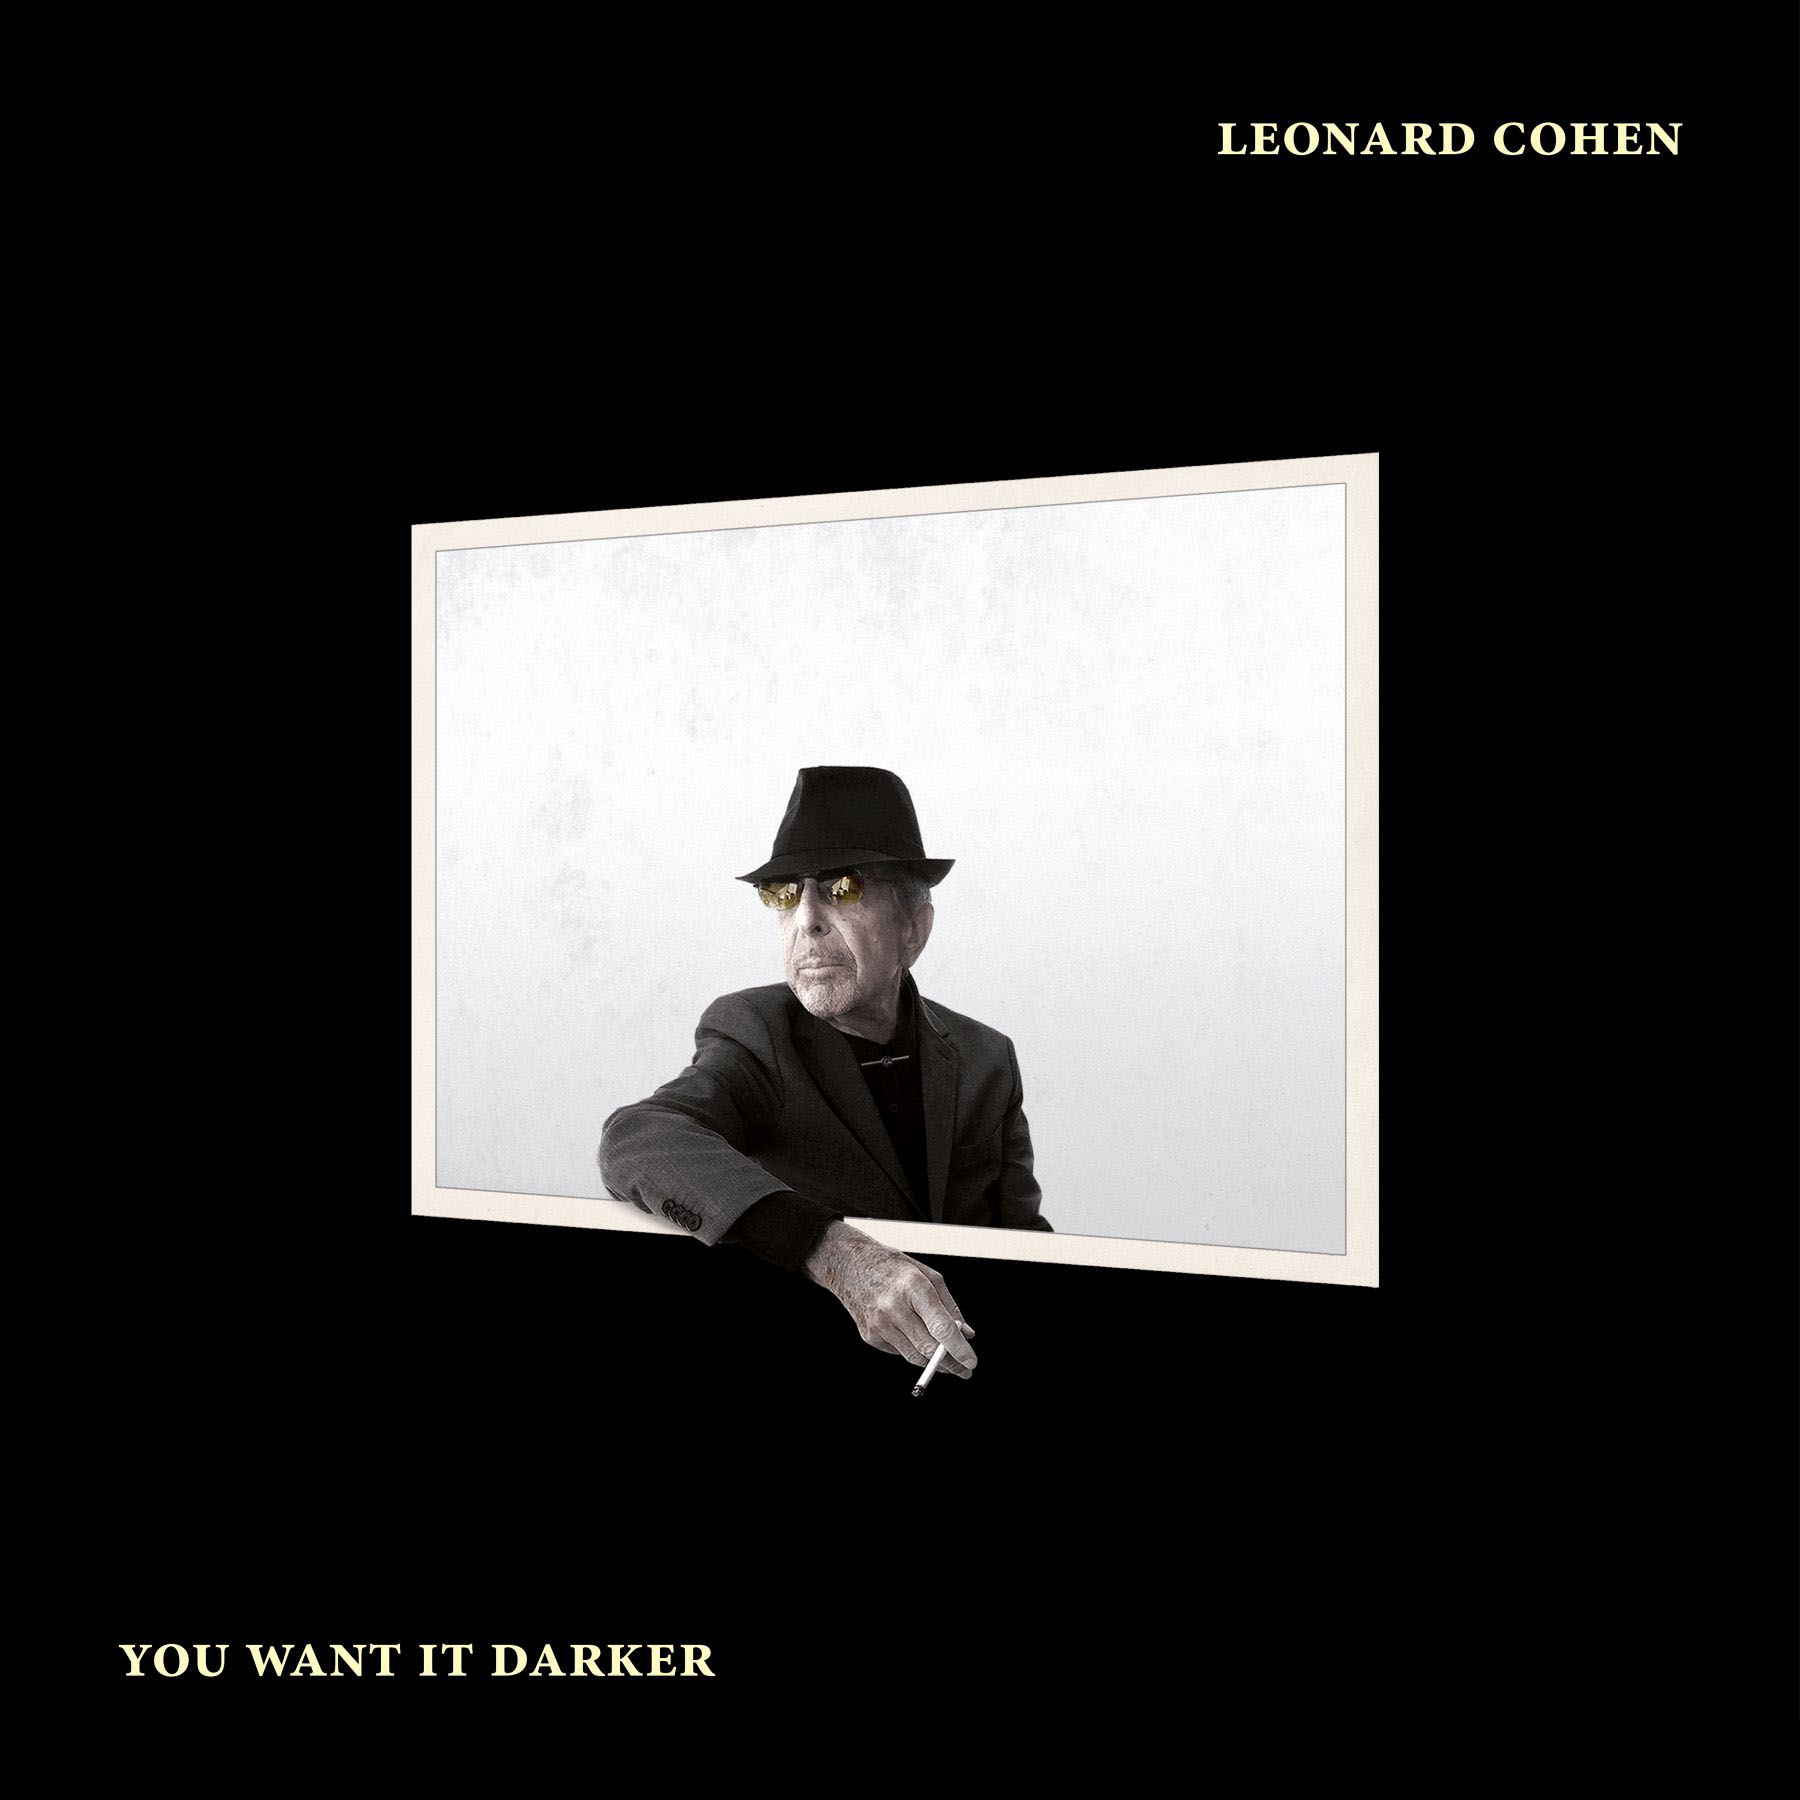 cohen-you-want-it-darker-album-cover-small-2